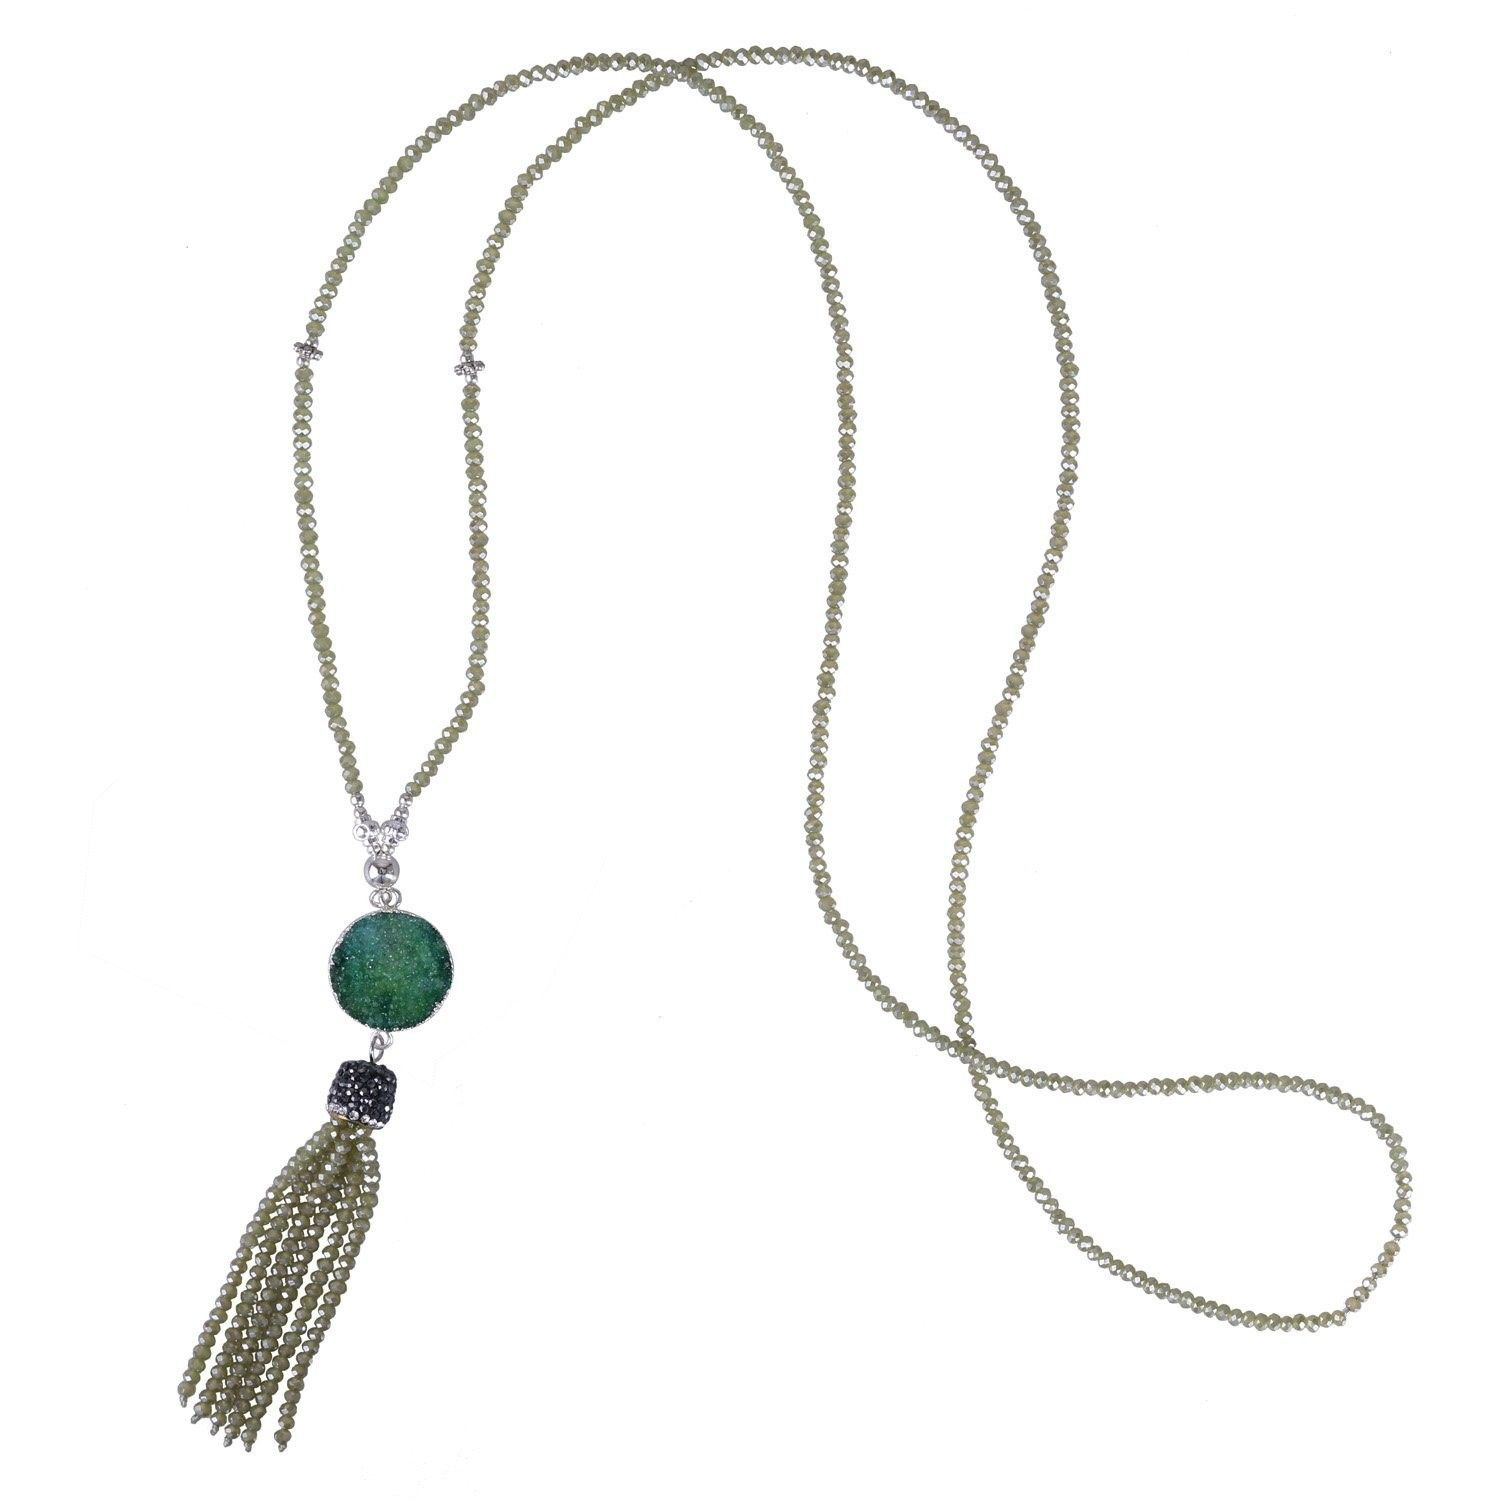 Long Crystal Beaded Necklace With Pave Crystal Capped Tassel With Regard To Best And Newest Beads & Pavé Necklaces (View 11 of 25)